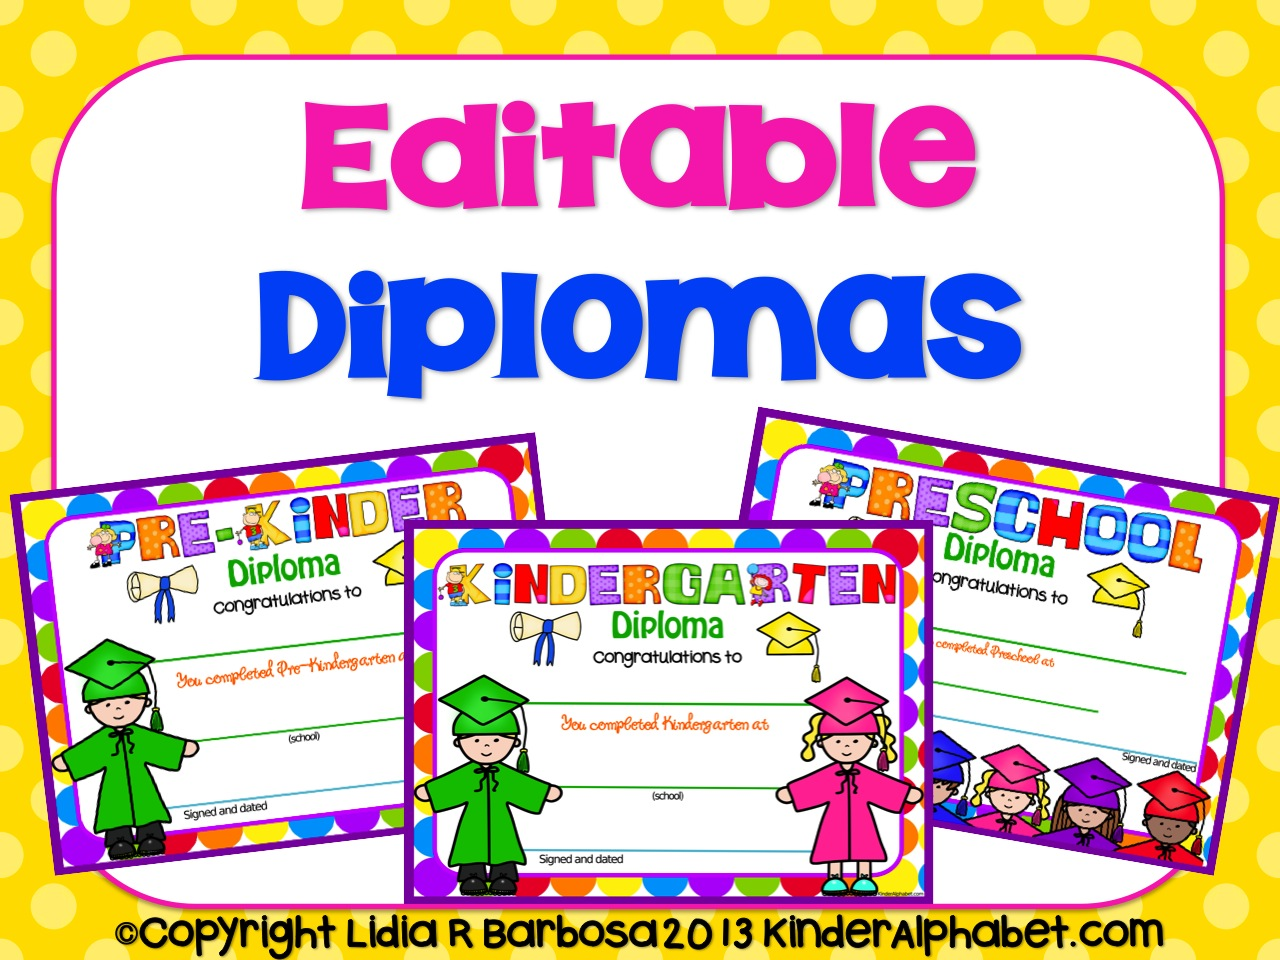 End of the year ideas editable diplomas yadclub